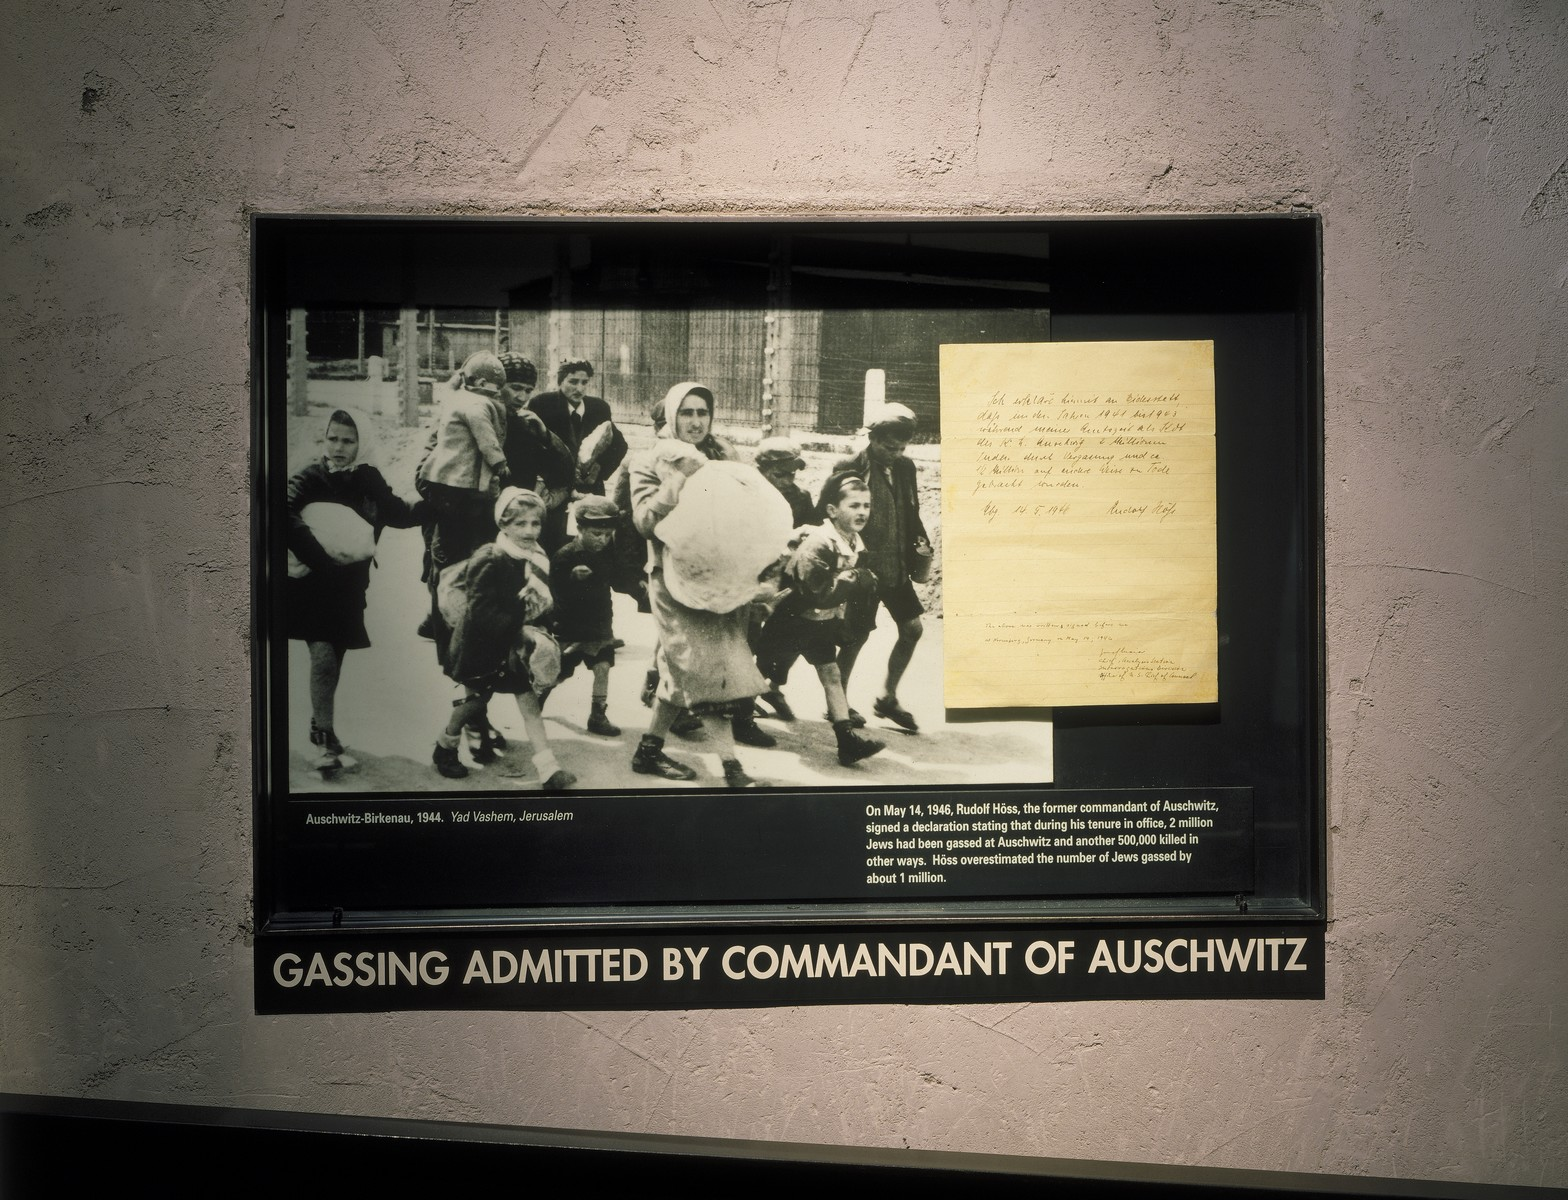 Auschwitz photo mural and affadavit signed by Auschwitz commandant Rudolf Hoess, displayed on the third floor of the permanent exhibition at the U.S. Holocaust Memorial Museum.  The affadavit, dated May 14, 1946, states that during Hoess' term as commandant two million inmates were gassed and 500,000 were killed in other ways at Auschwitz.